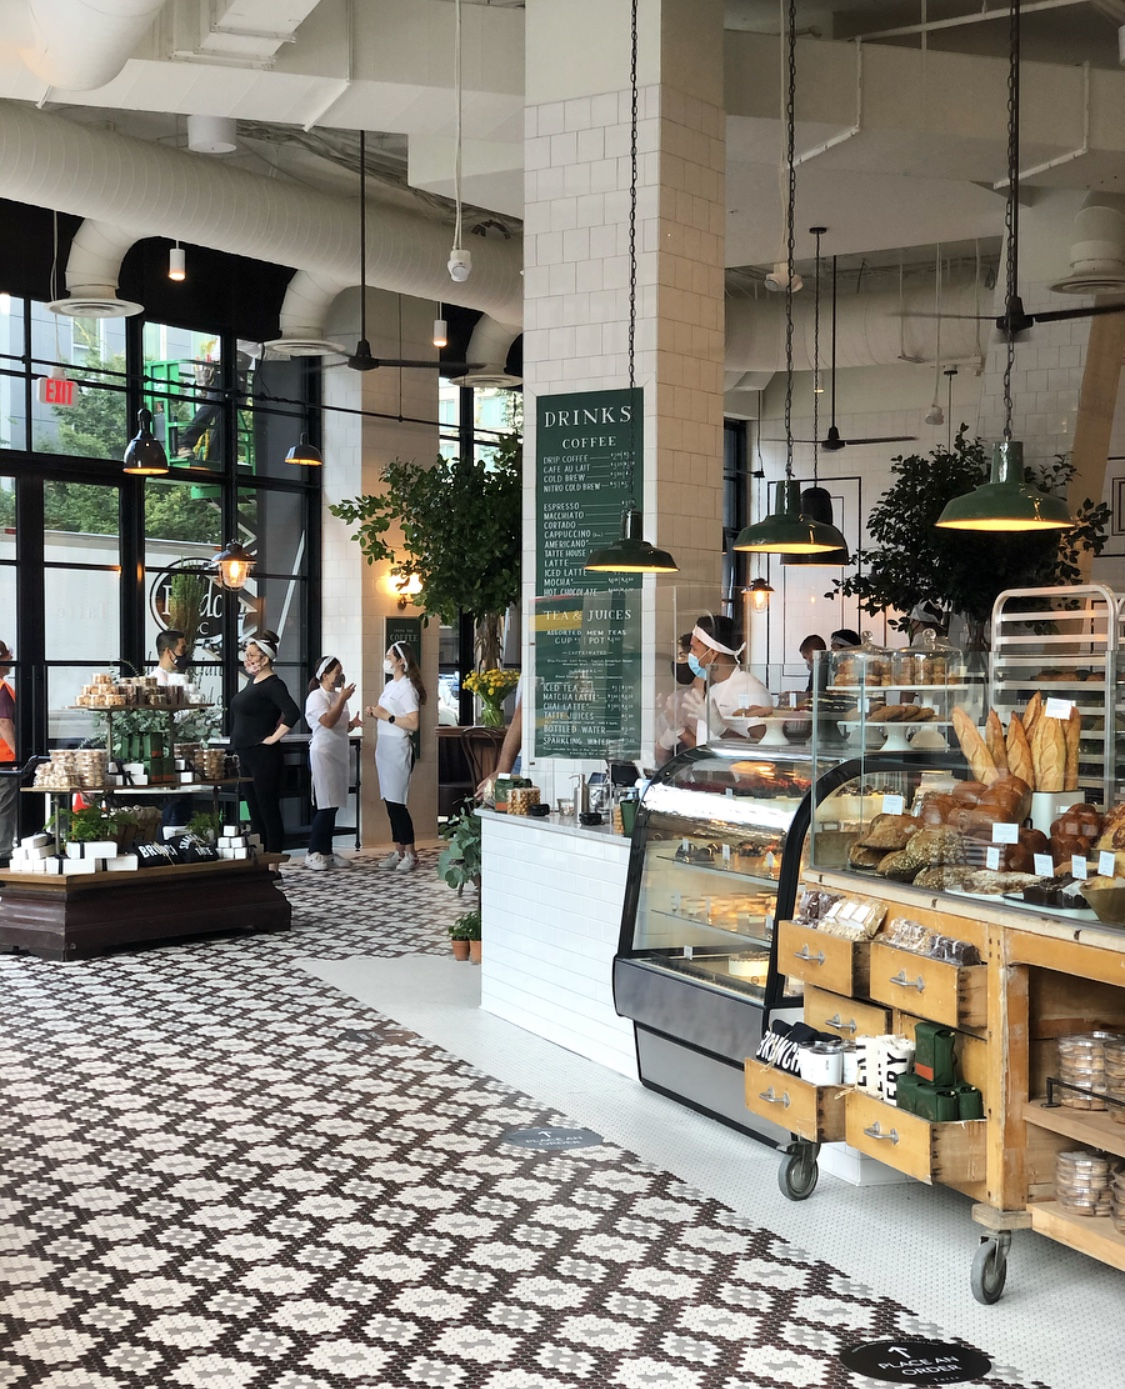 The interior of a bakery with black-and-white floors, high ceilings, and pastry cases. Workers stand in the background chatting in face masks.